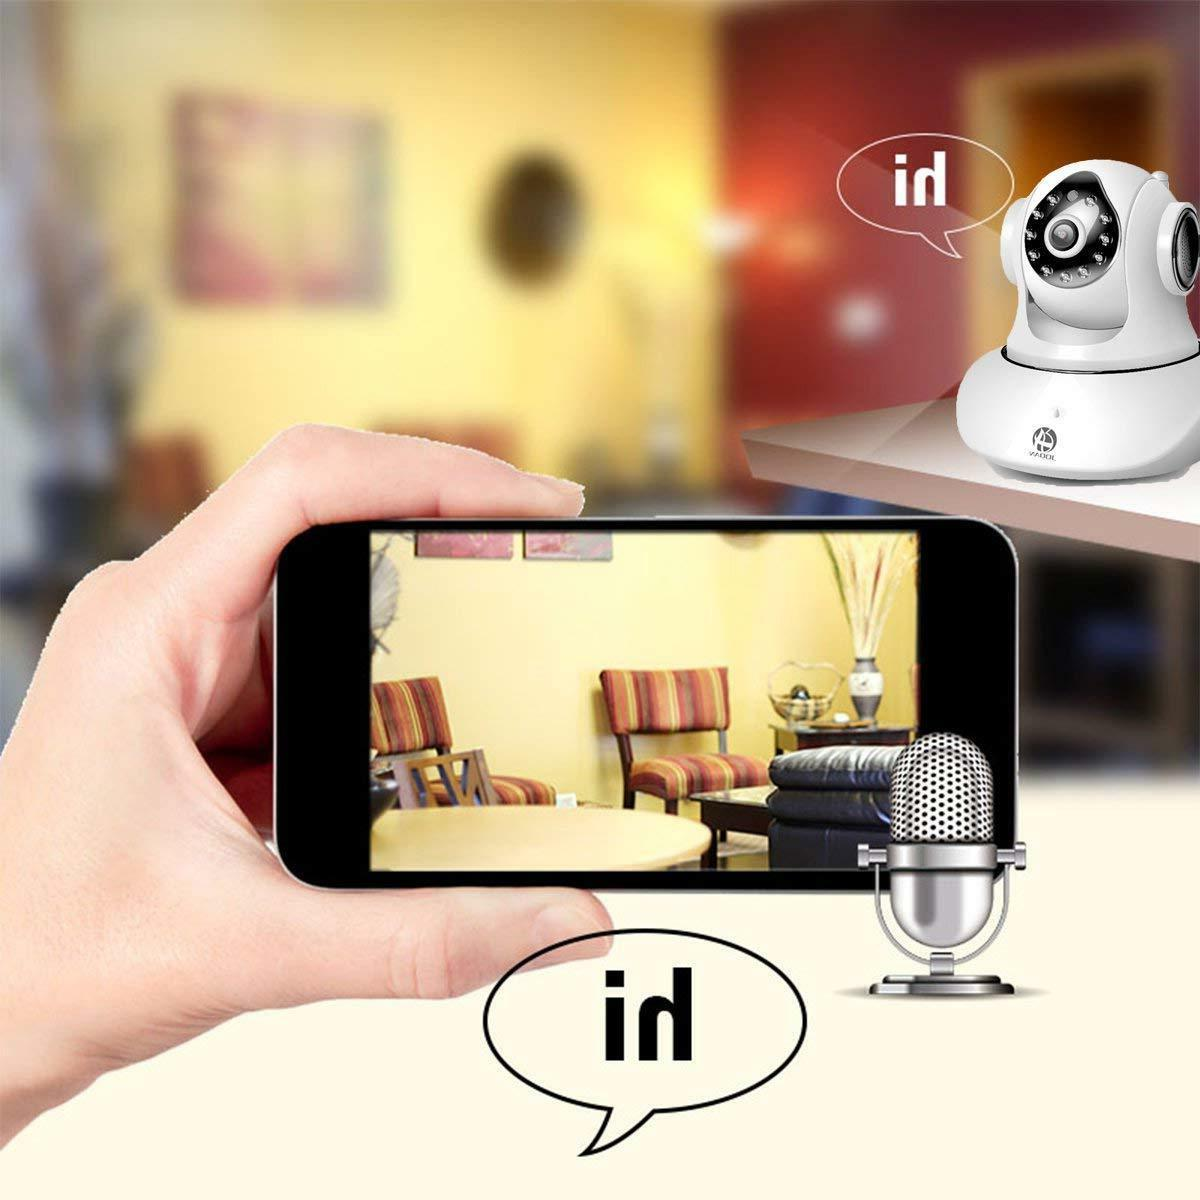 Home IP JOOAN HD System Remote Monitoring